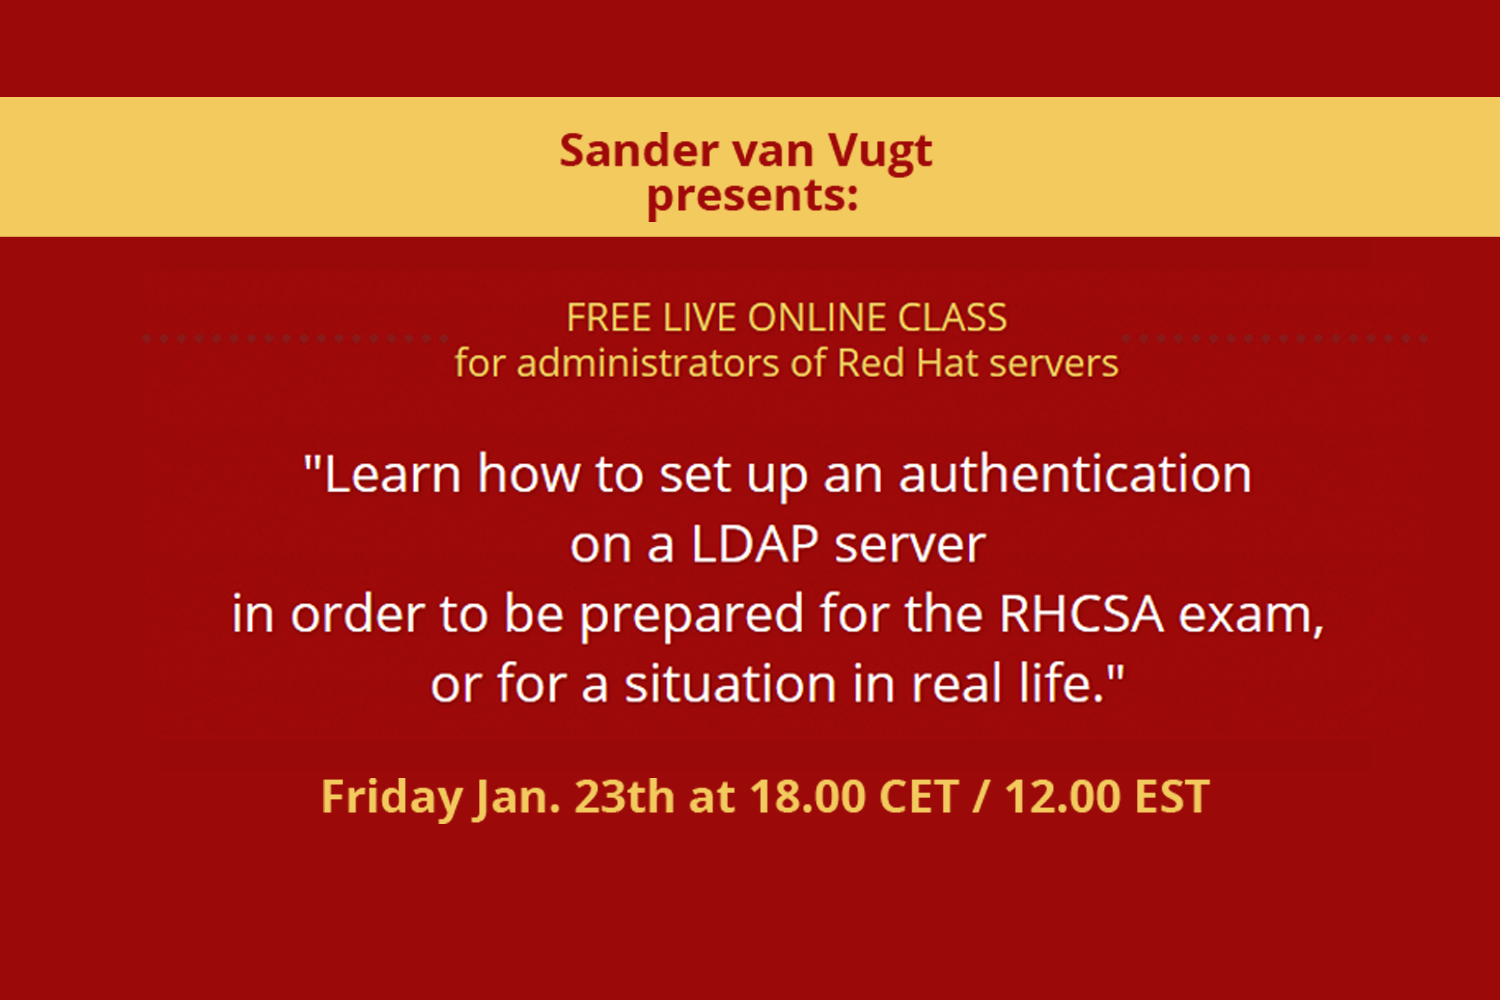 Free Live Online Class: Learn how to set up an authentication on an LDAP server